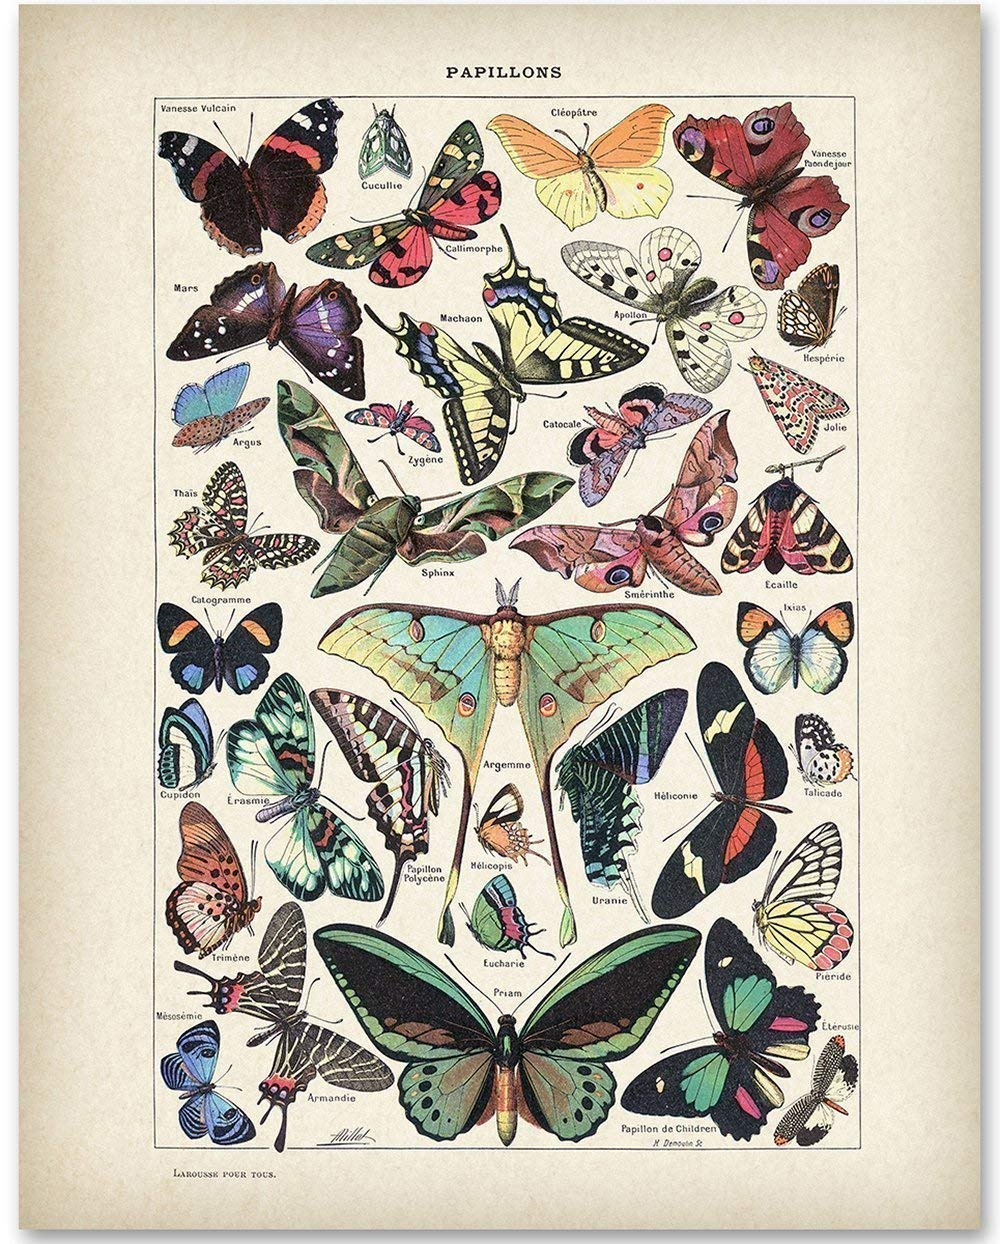 Butterflies Illustration - 11x14 Unframed Art Print - Makes a Great Gift Under $15 for Bathroom Decor